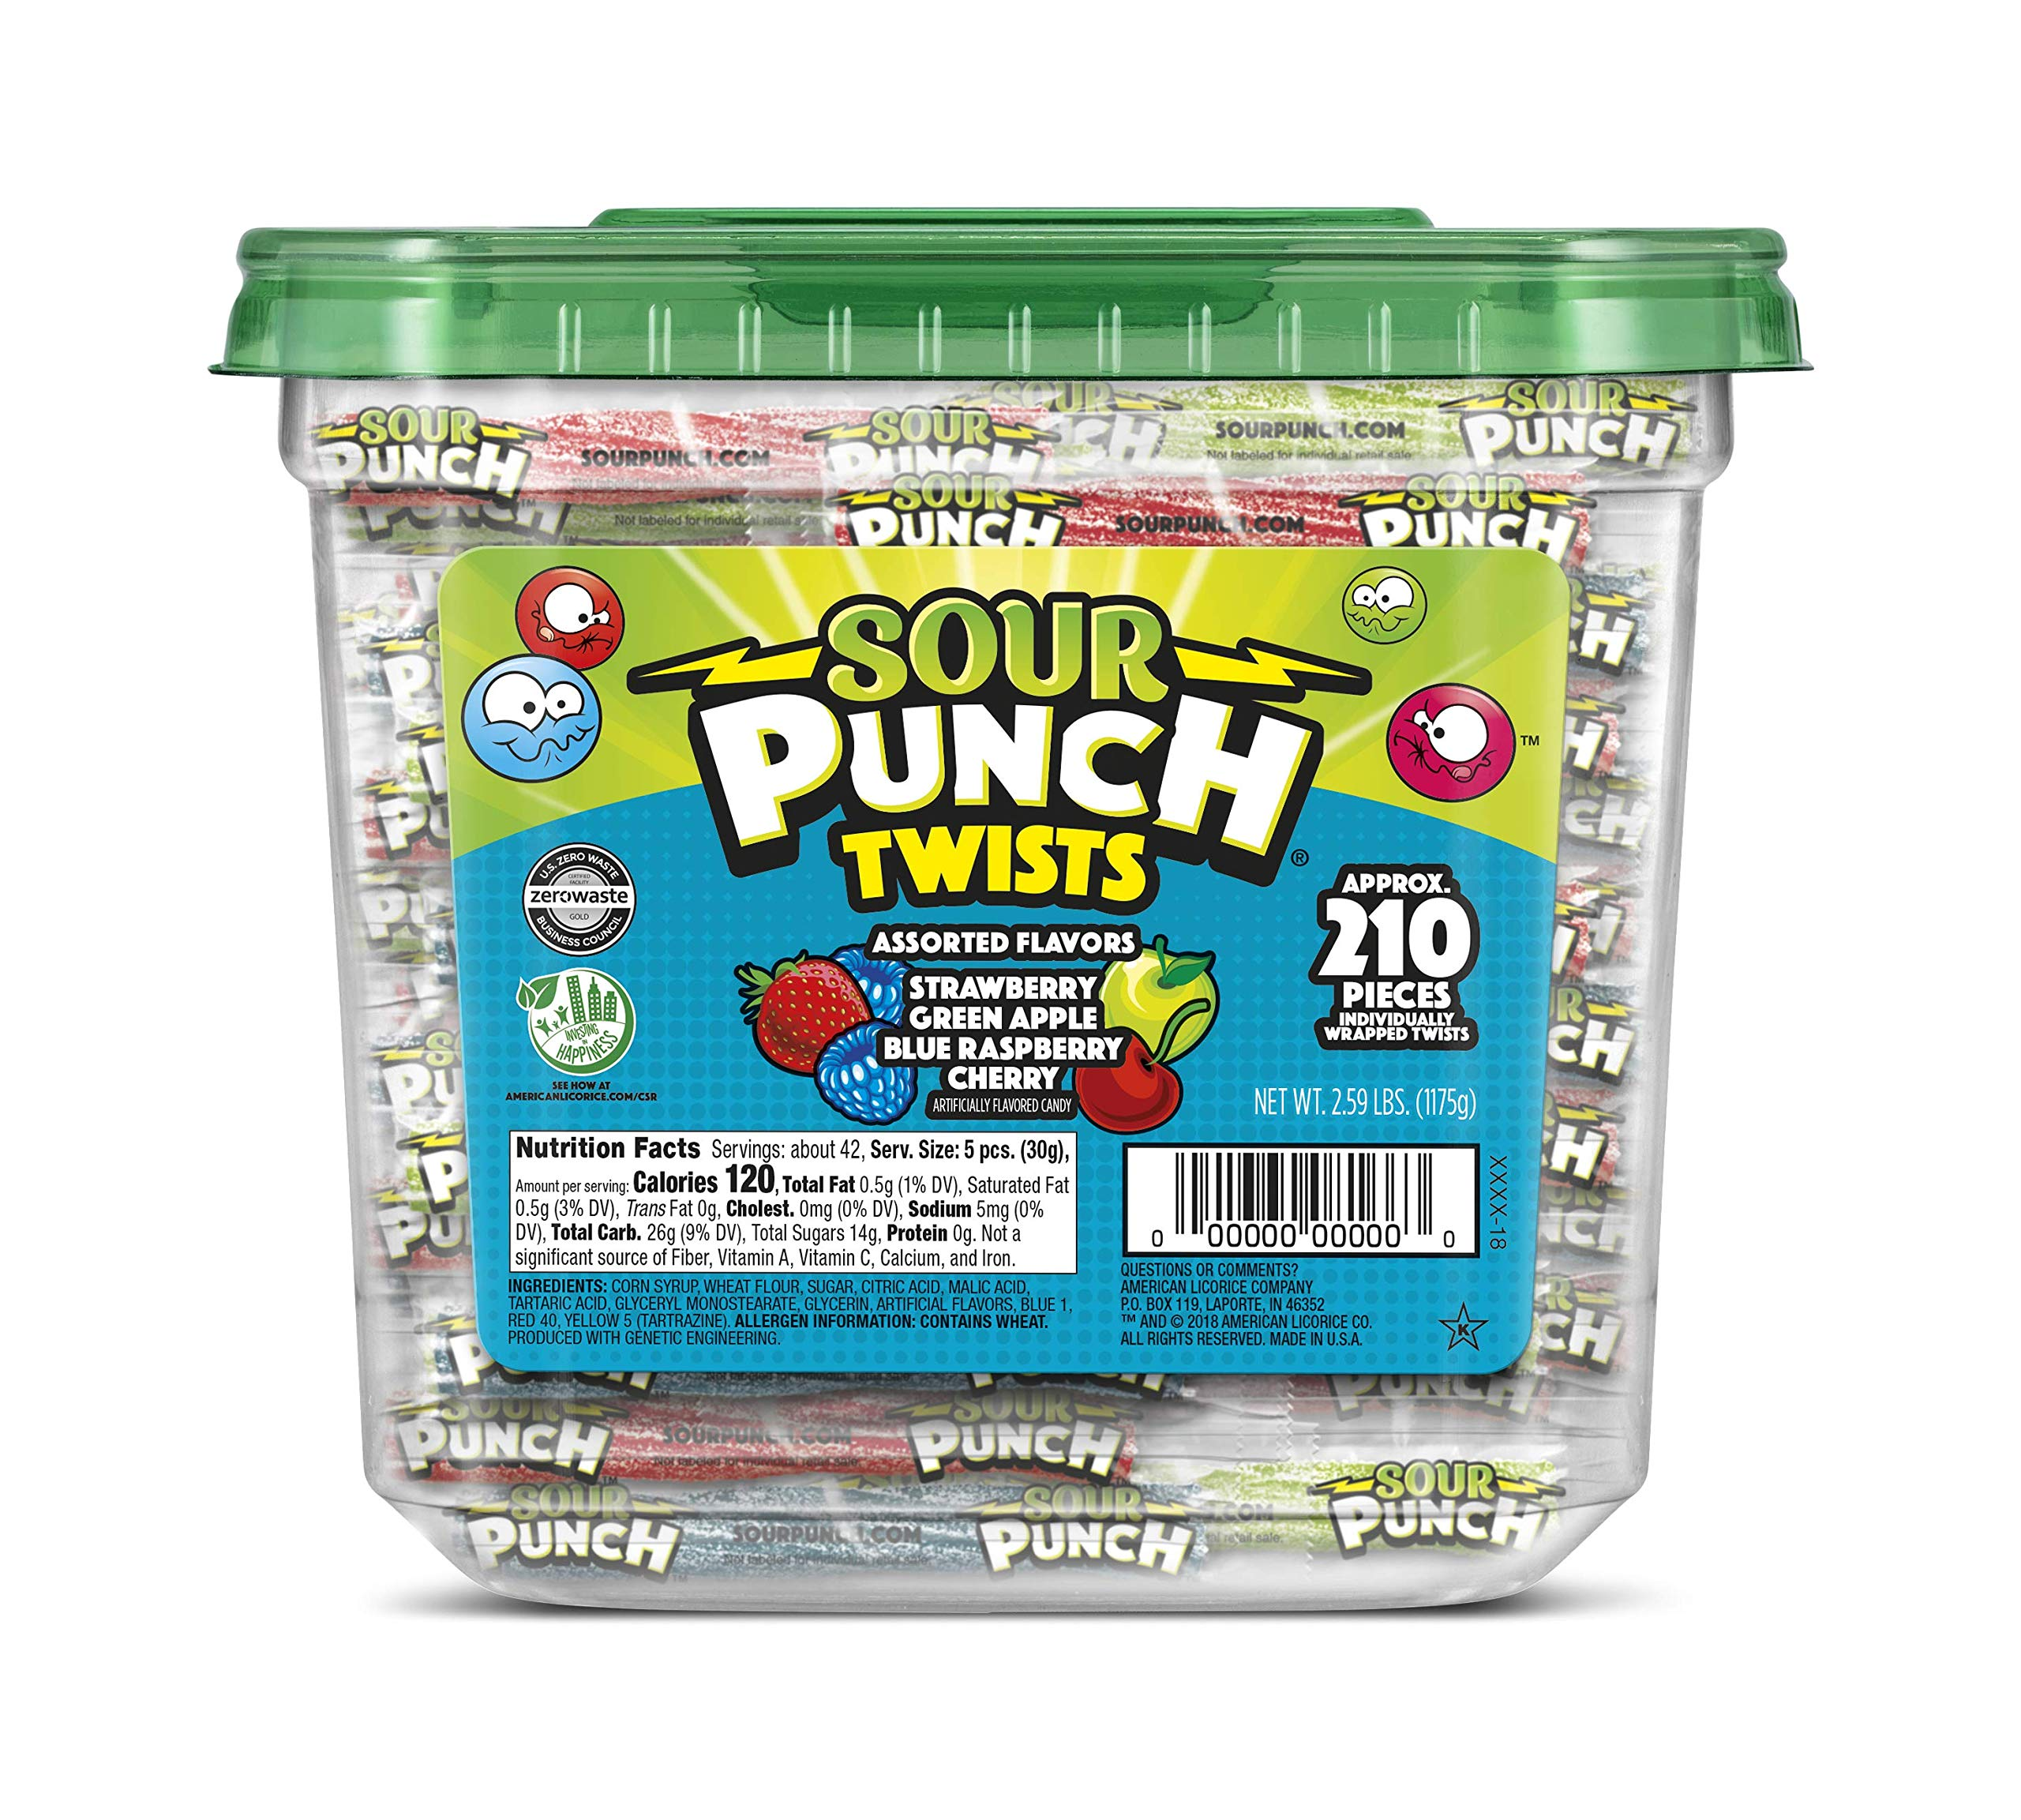 Sour Punch Sour Punch Twists, 3'' Individually Wrapped Chewy Candy, 4 Fruity Flavors, 2.59LB Jar by Sour Punch